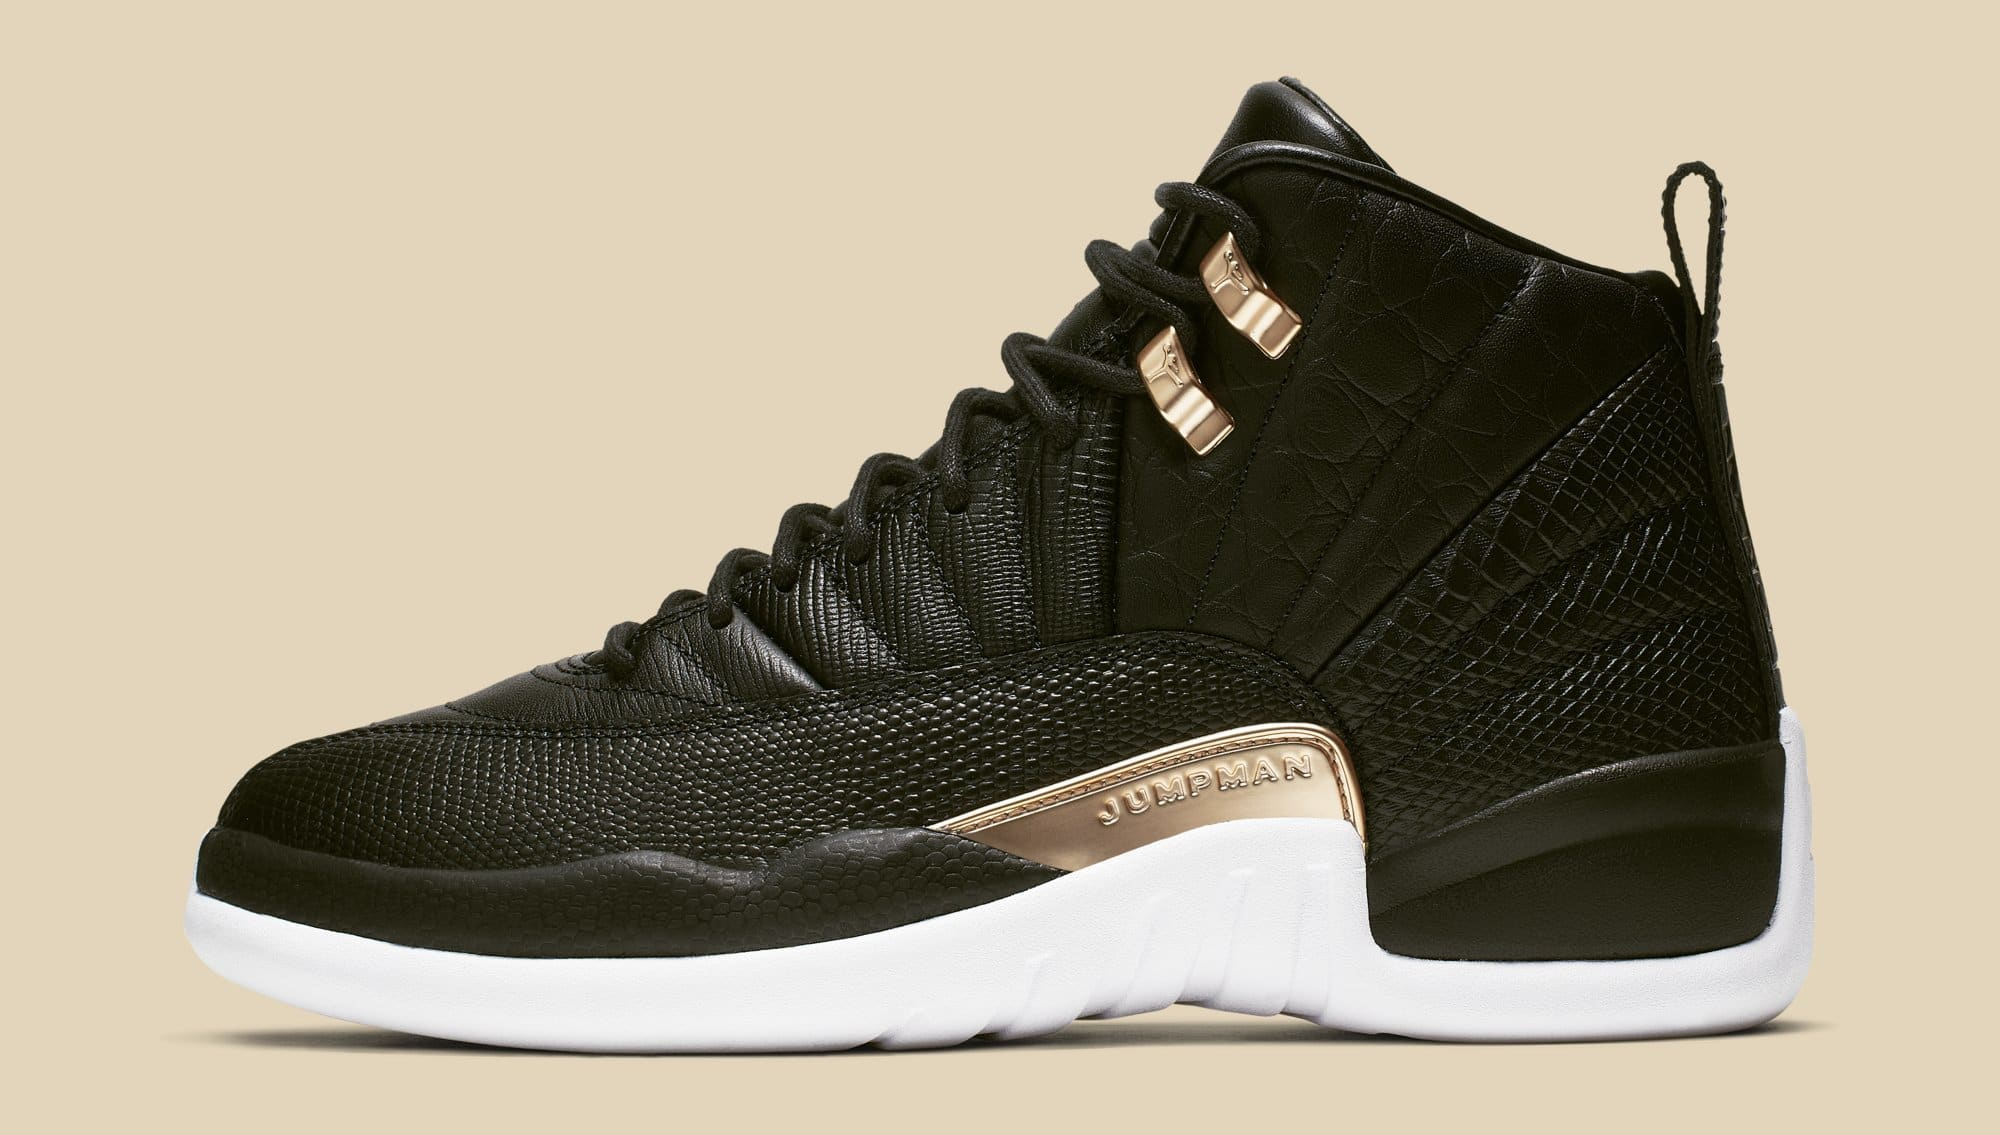 490866fefcc3 WMNS Air Jordan 12  Black Metallic Gold-White  AO6068-007 Release ...